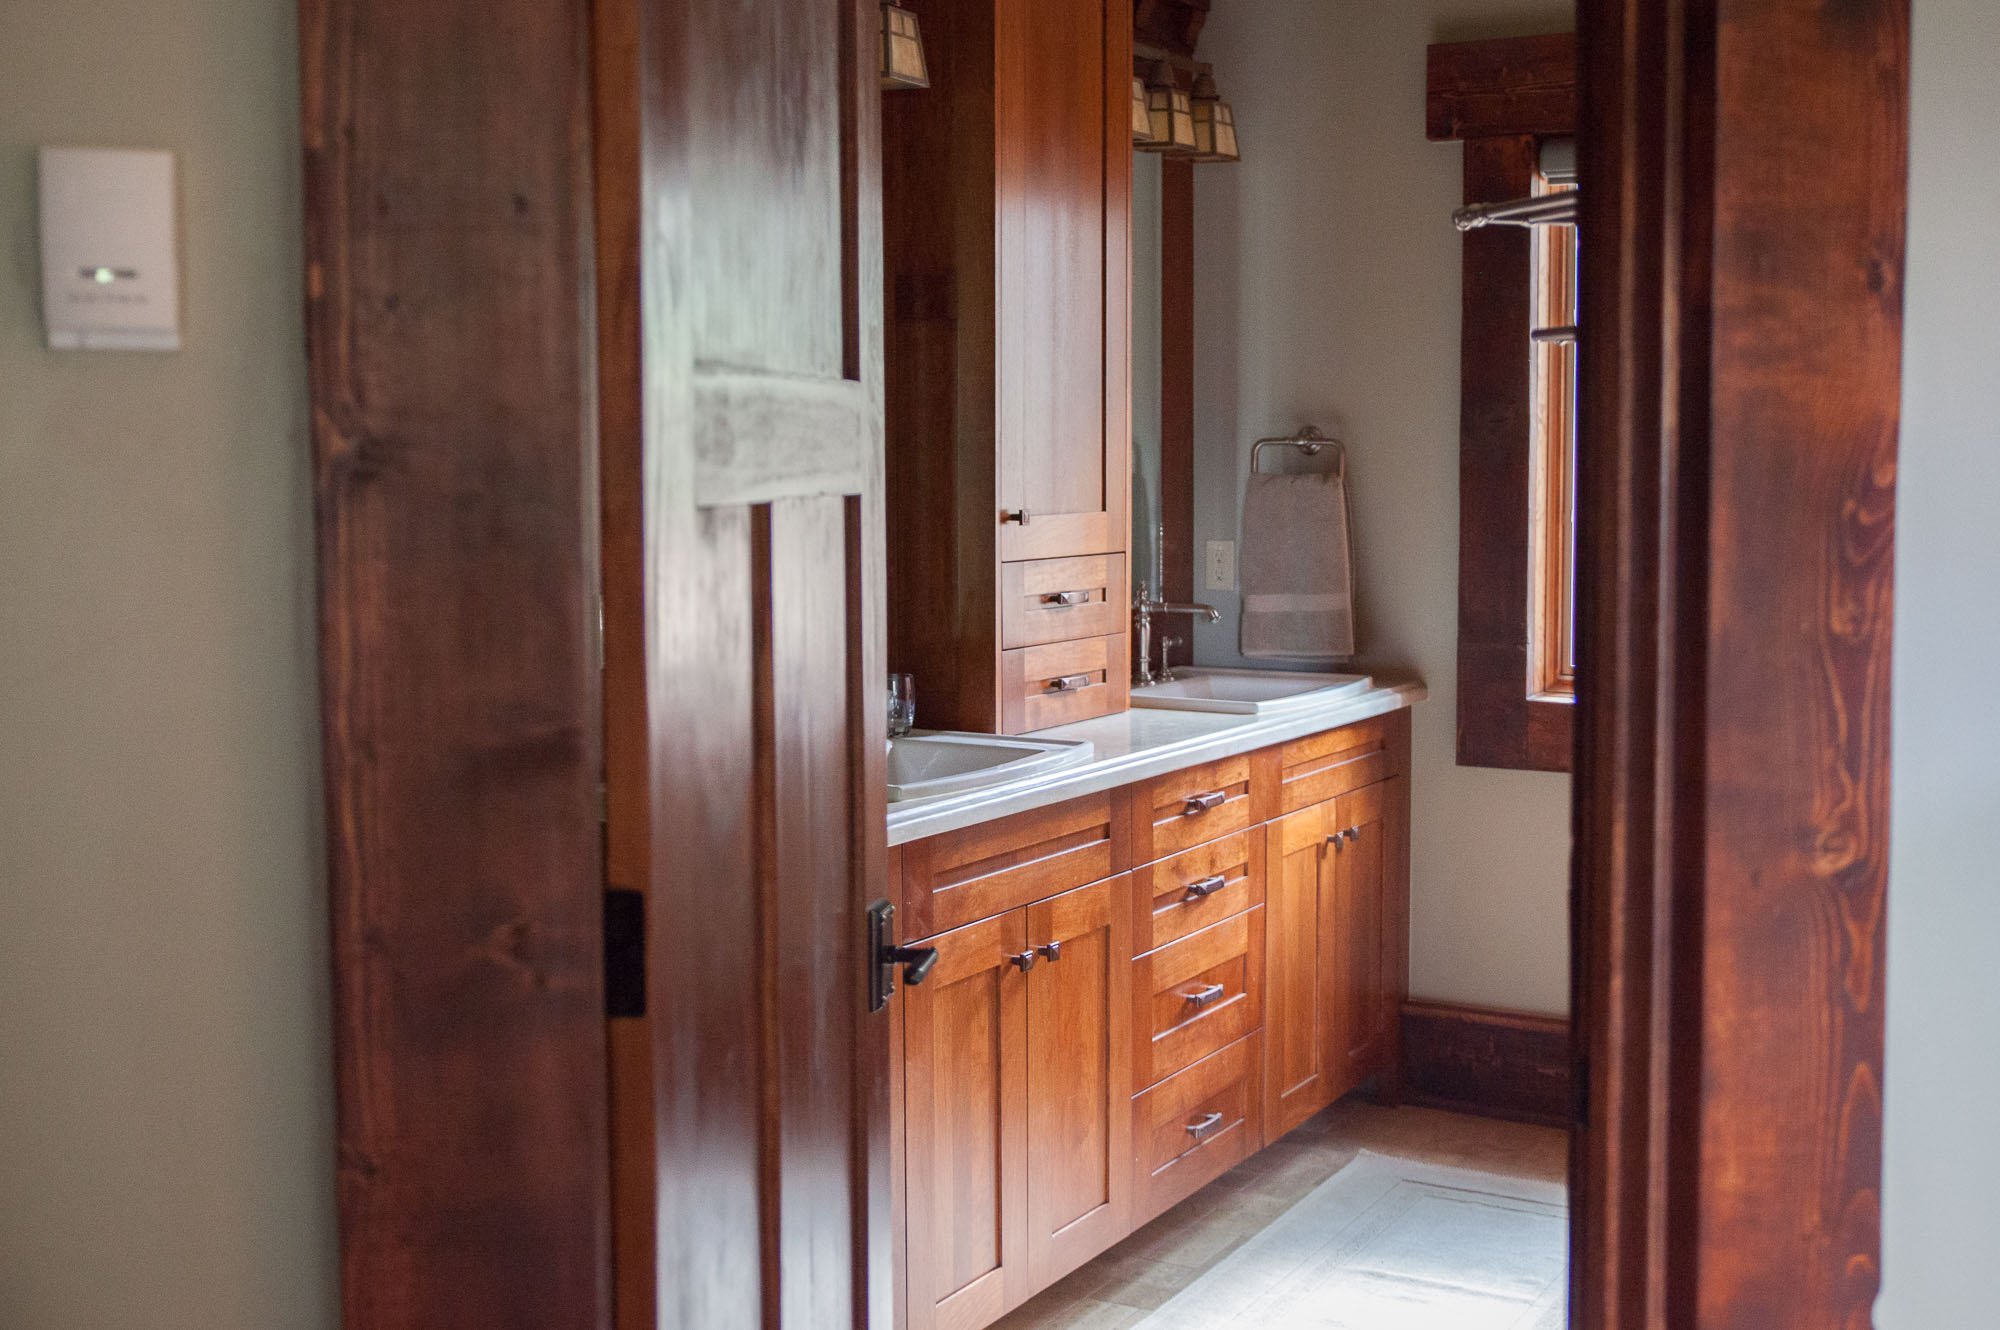 craftsman bathroom with built-in cabinetry